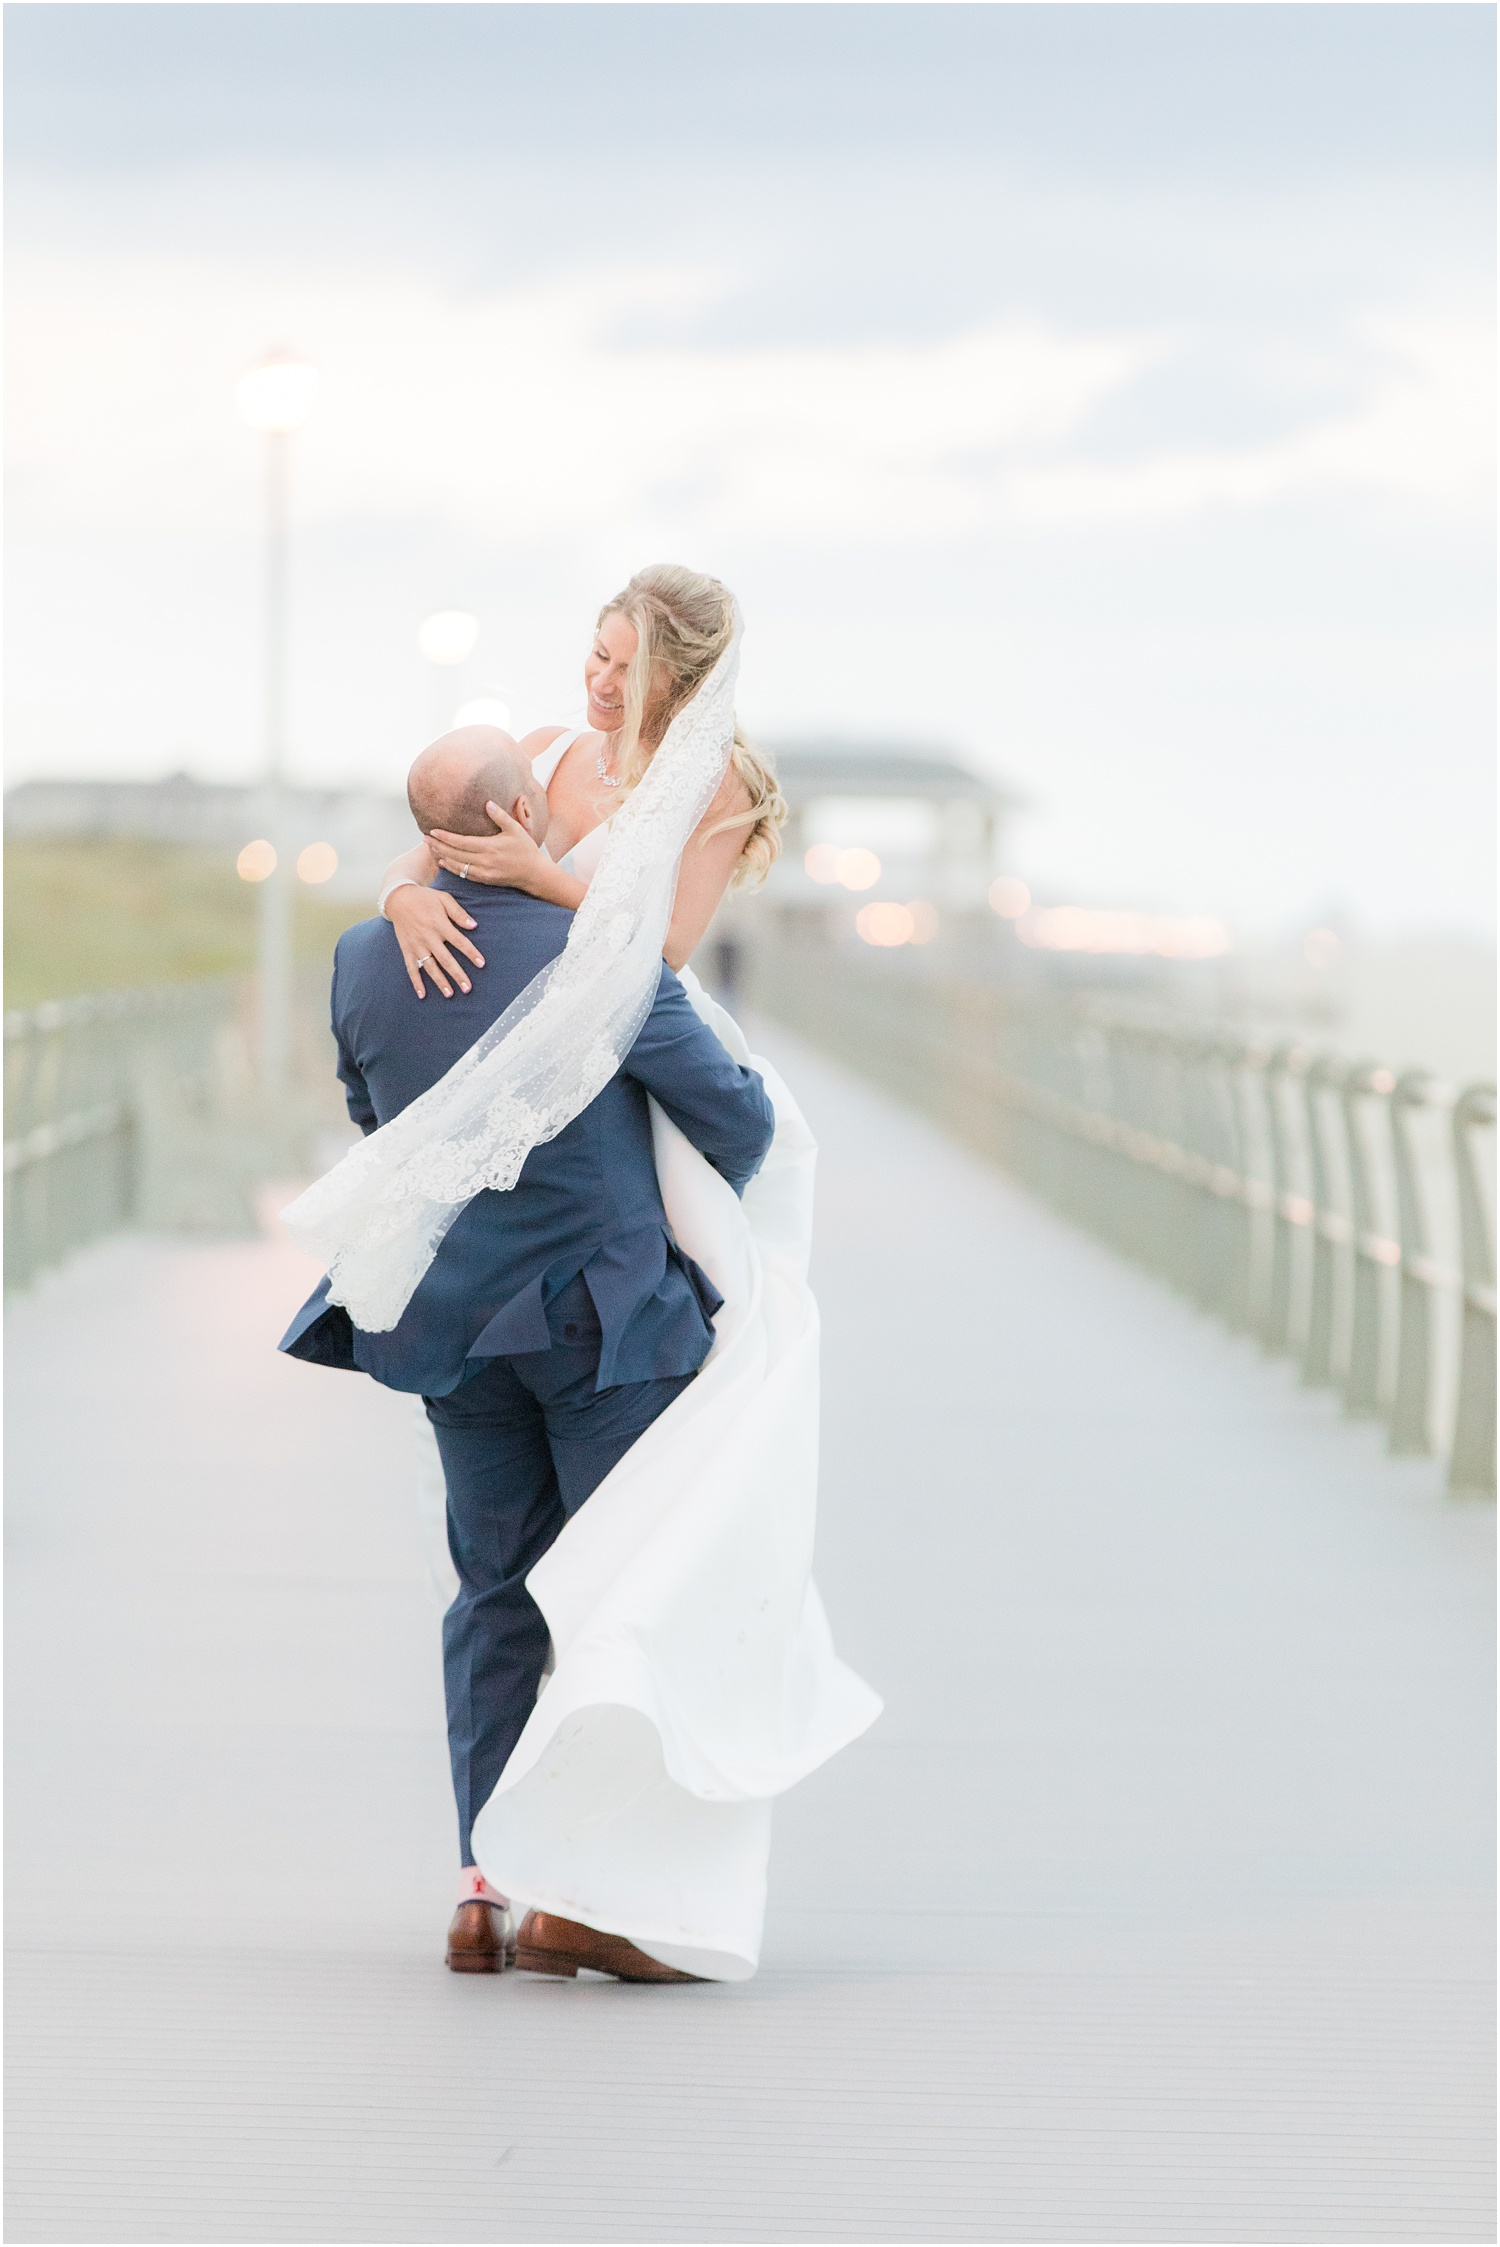 Dreamy photo of bride and groom on the boardwalk in Spring Lake, NJ.